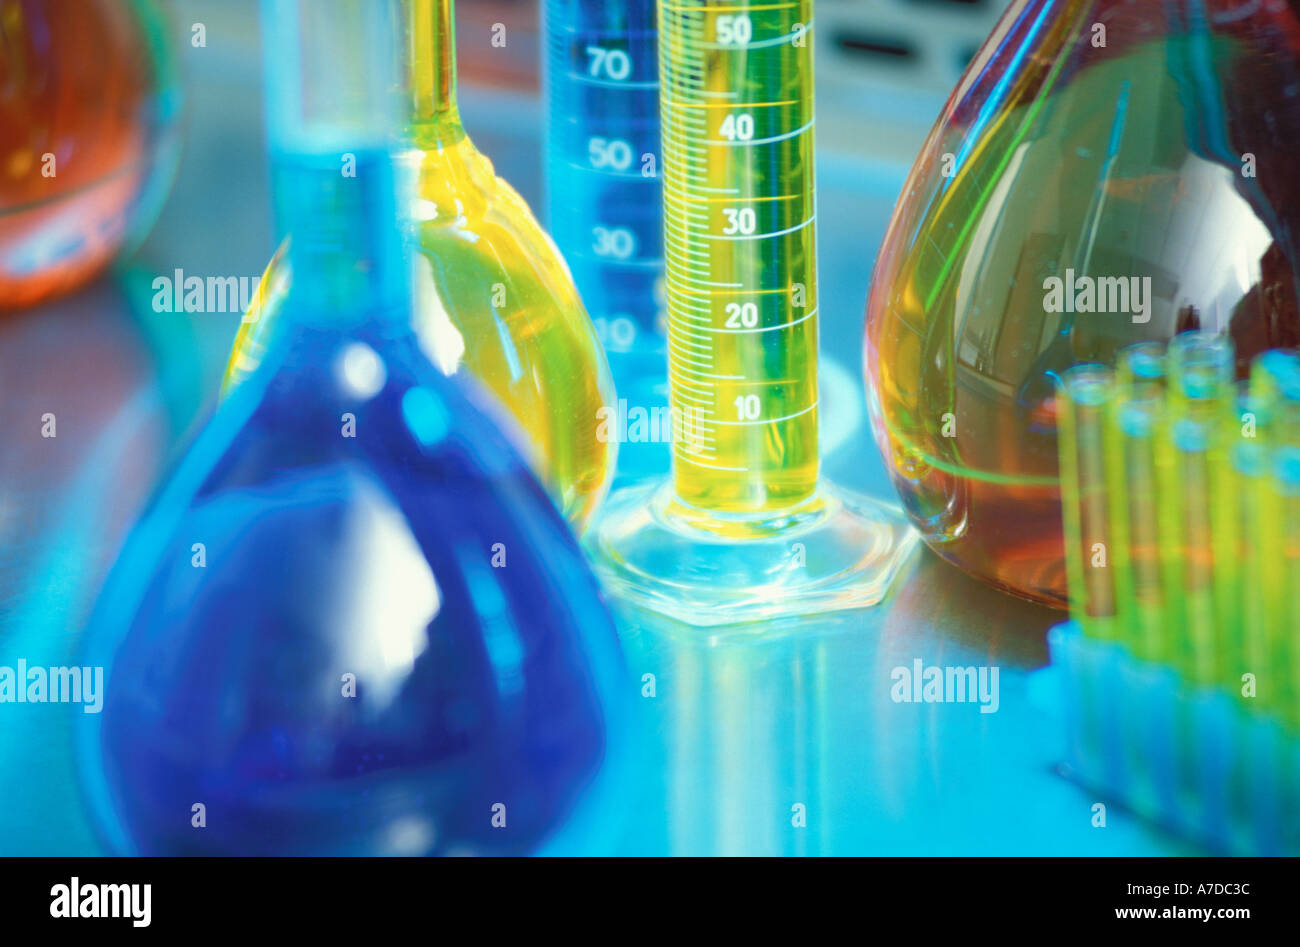 Laboratory flasks tubes and graduated cylinders - Stock Image